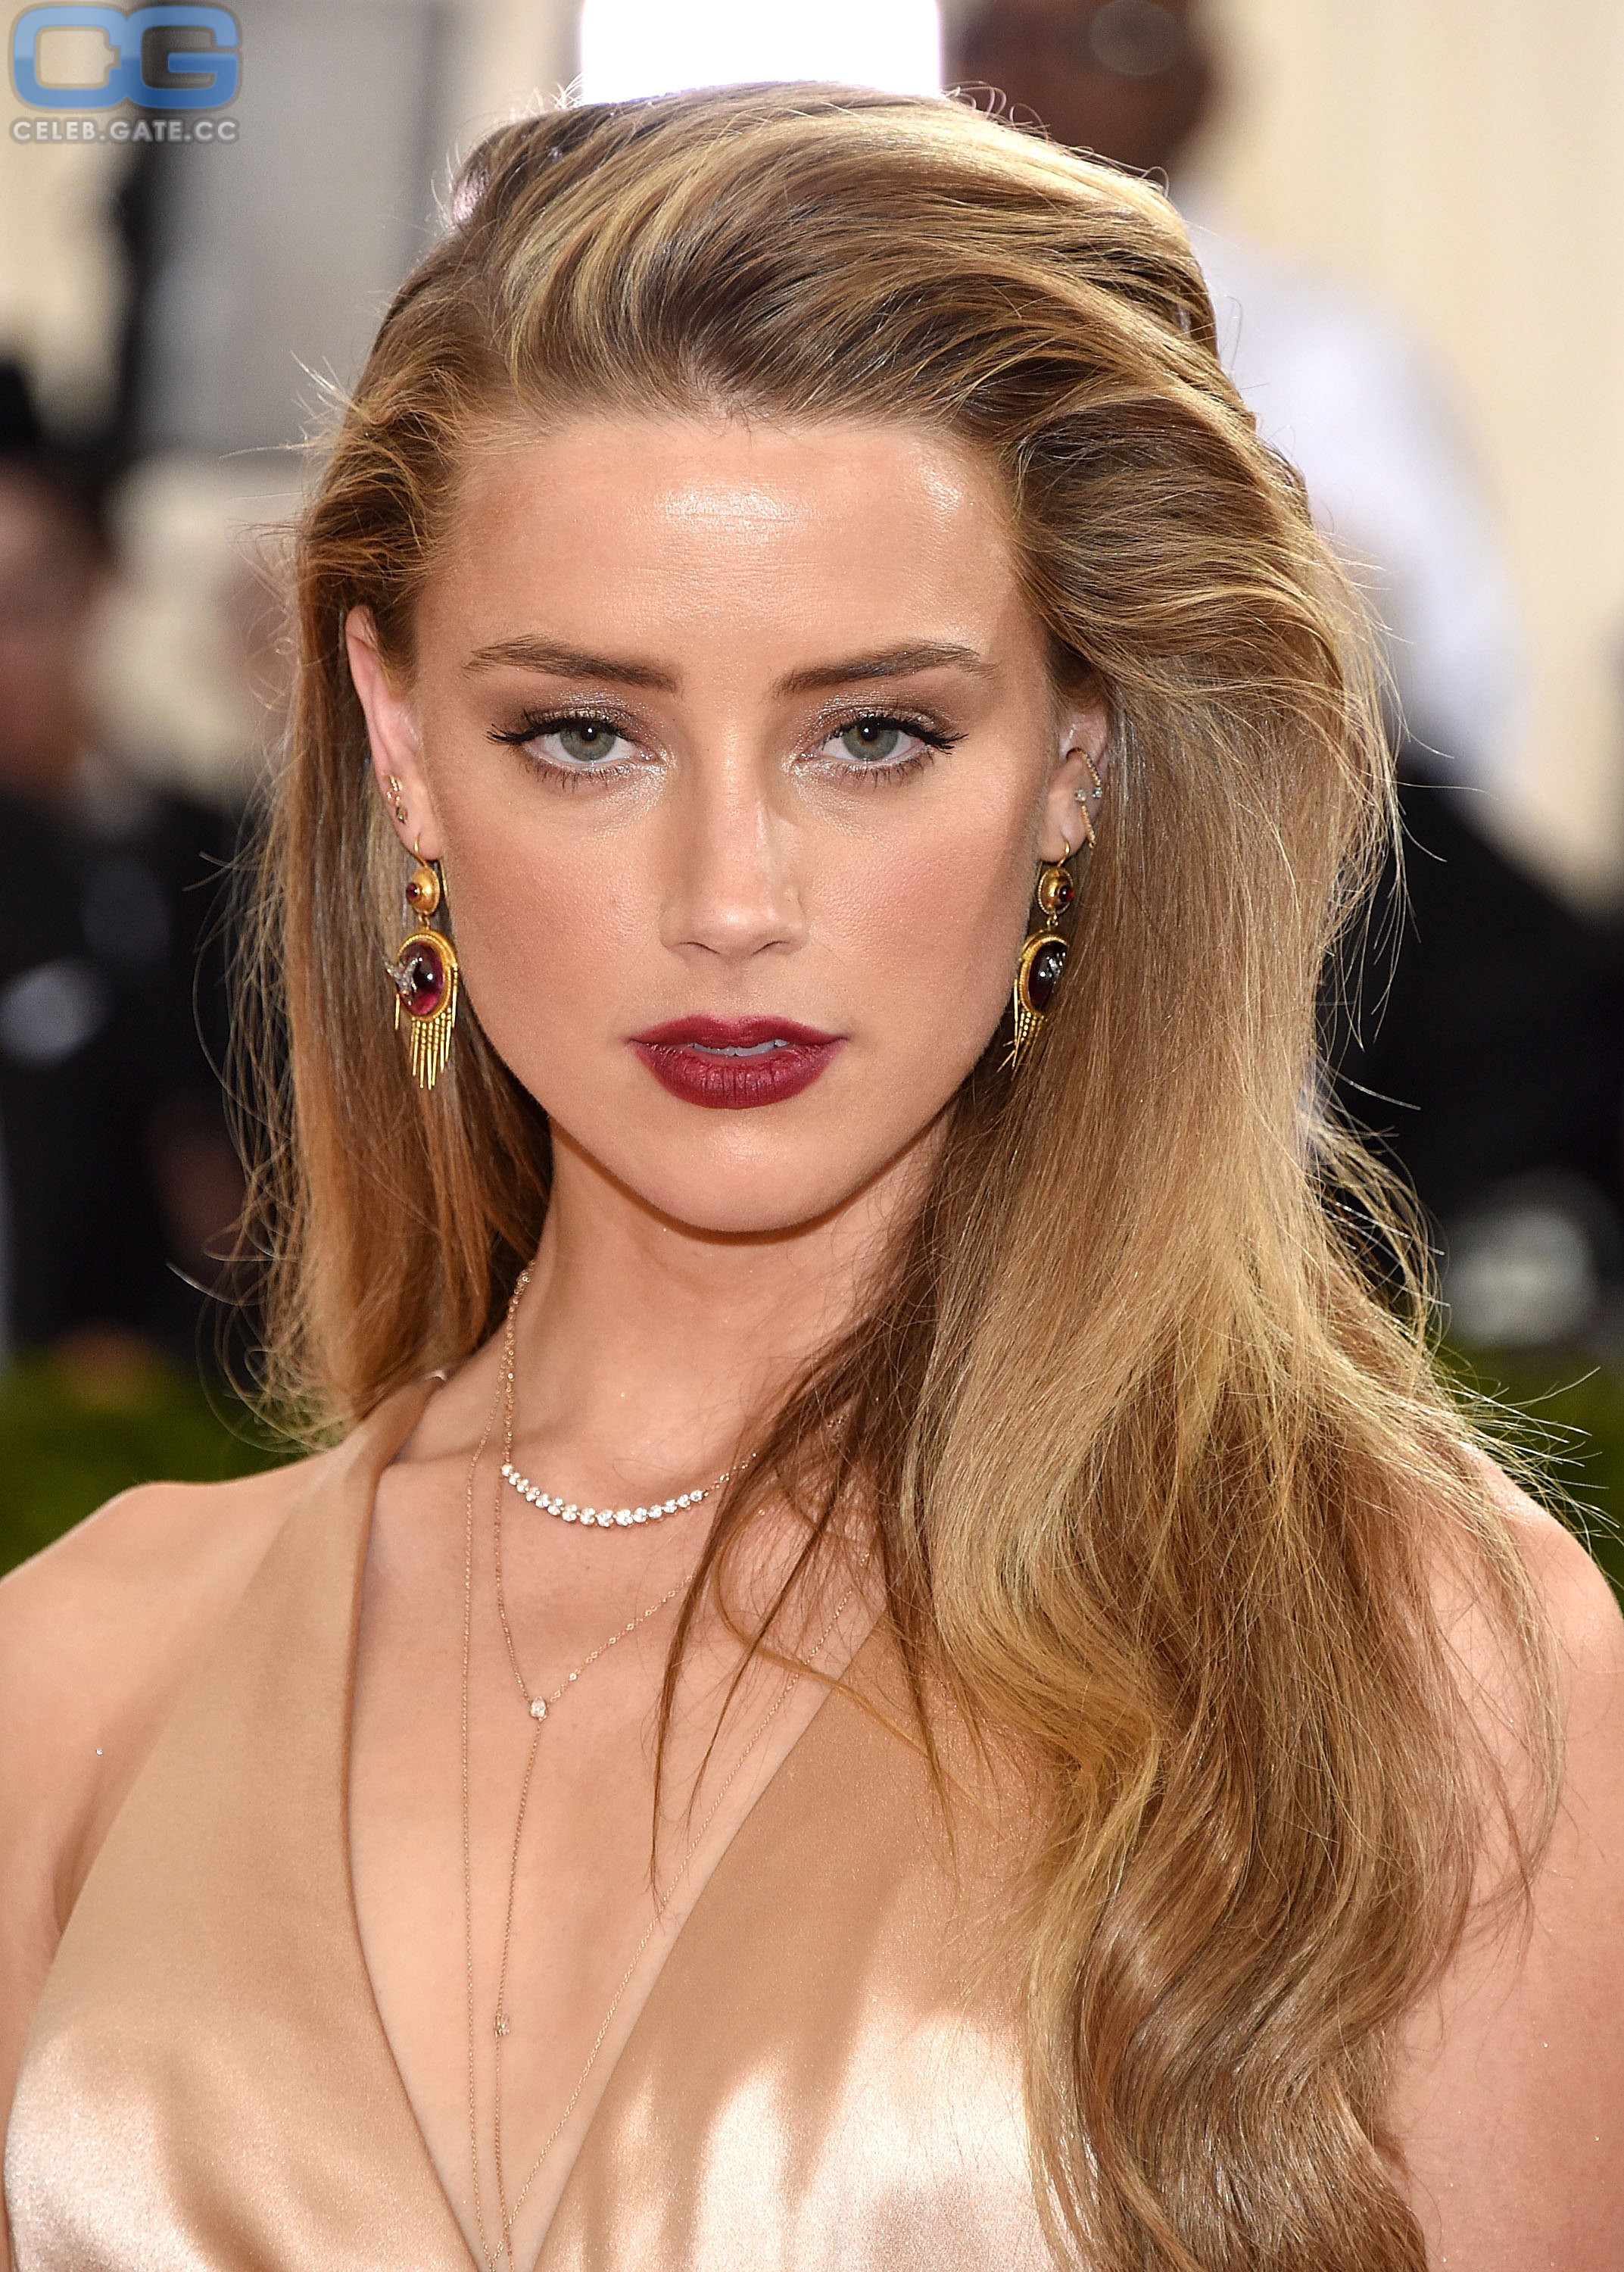 Amber Heard Topless amber heard nude, pictures, photos, playboy, naked, topless